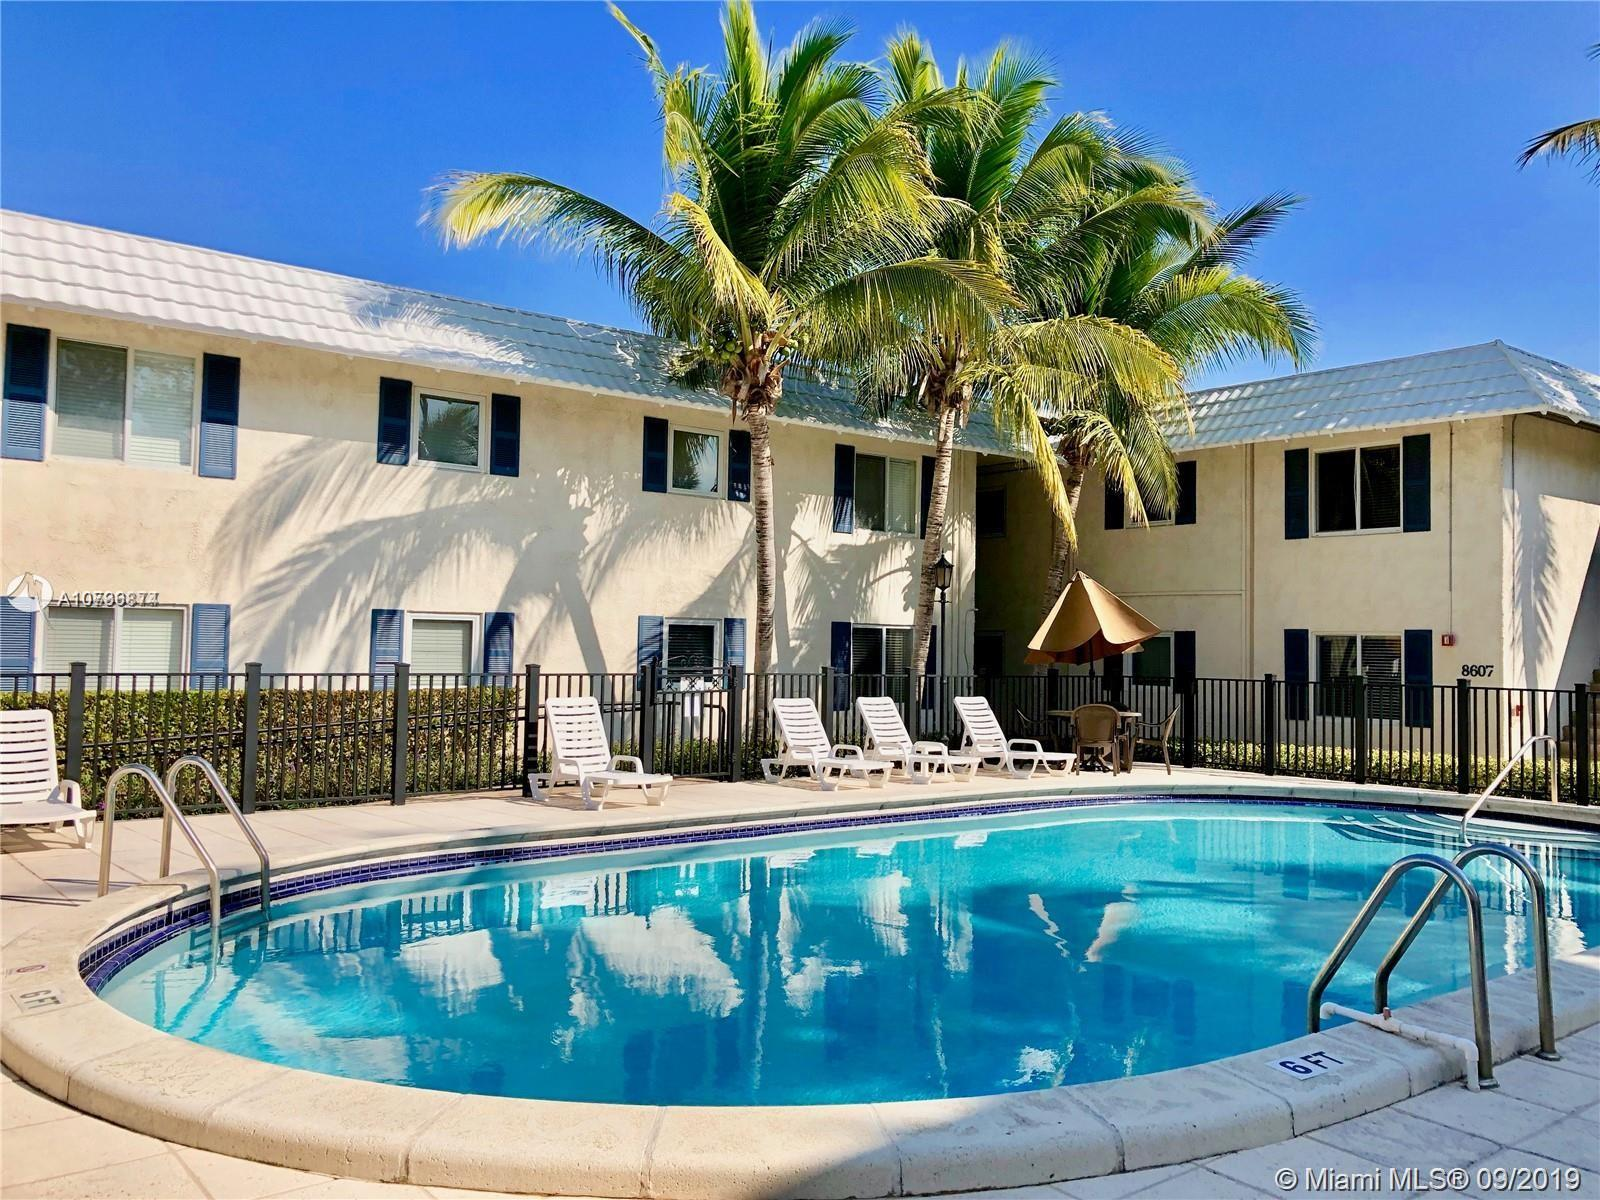 8605 SW 68th Ct #6 Pinecrest, FL Investment Property | Real Estate Investing